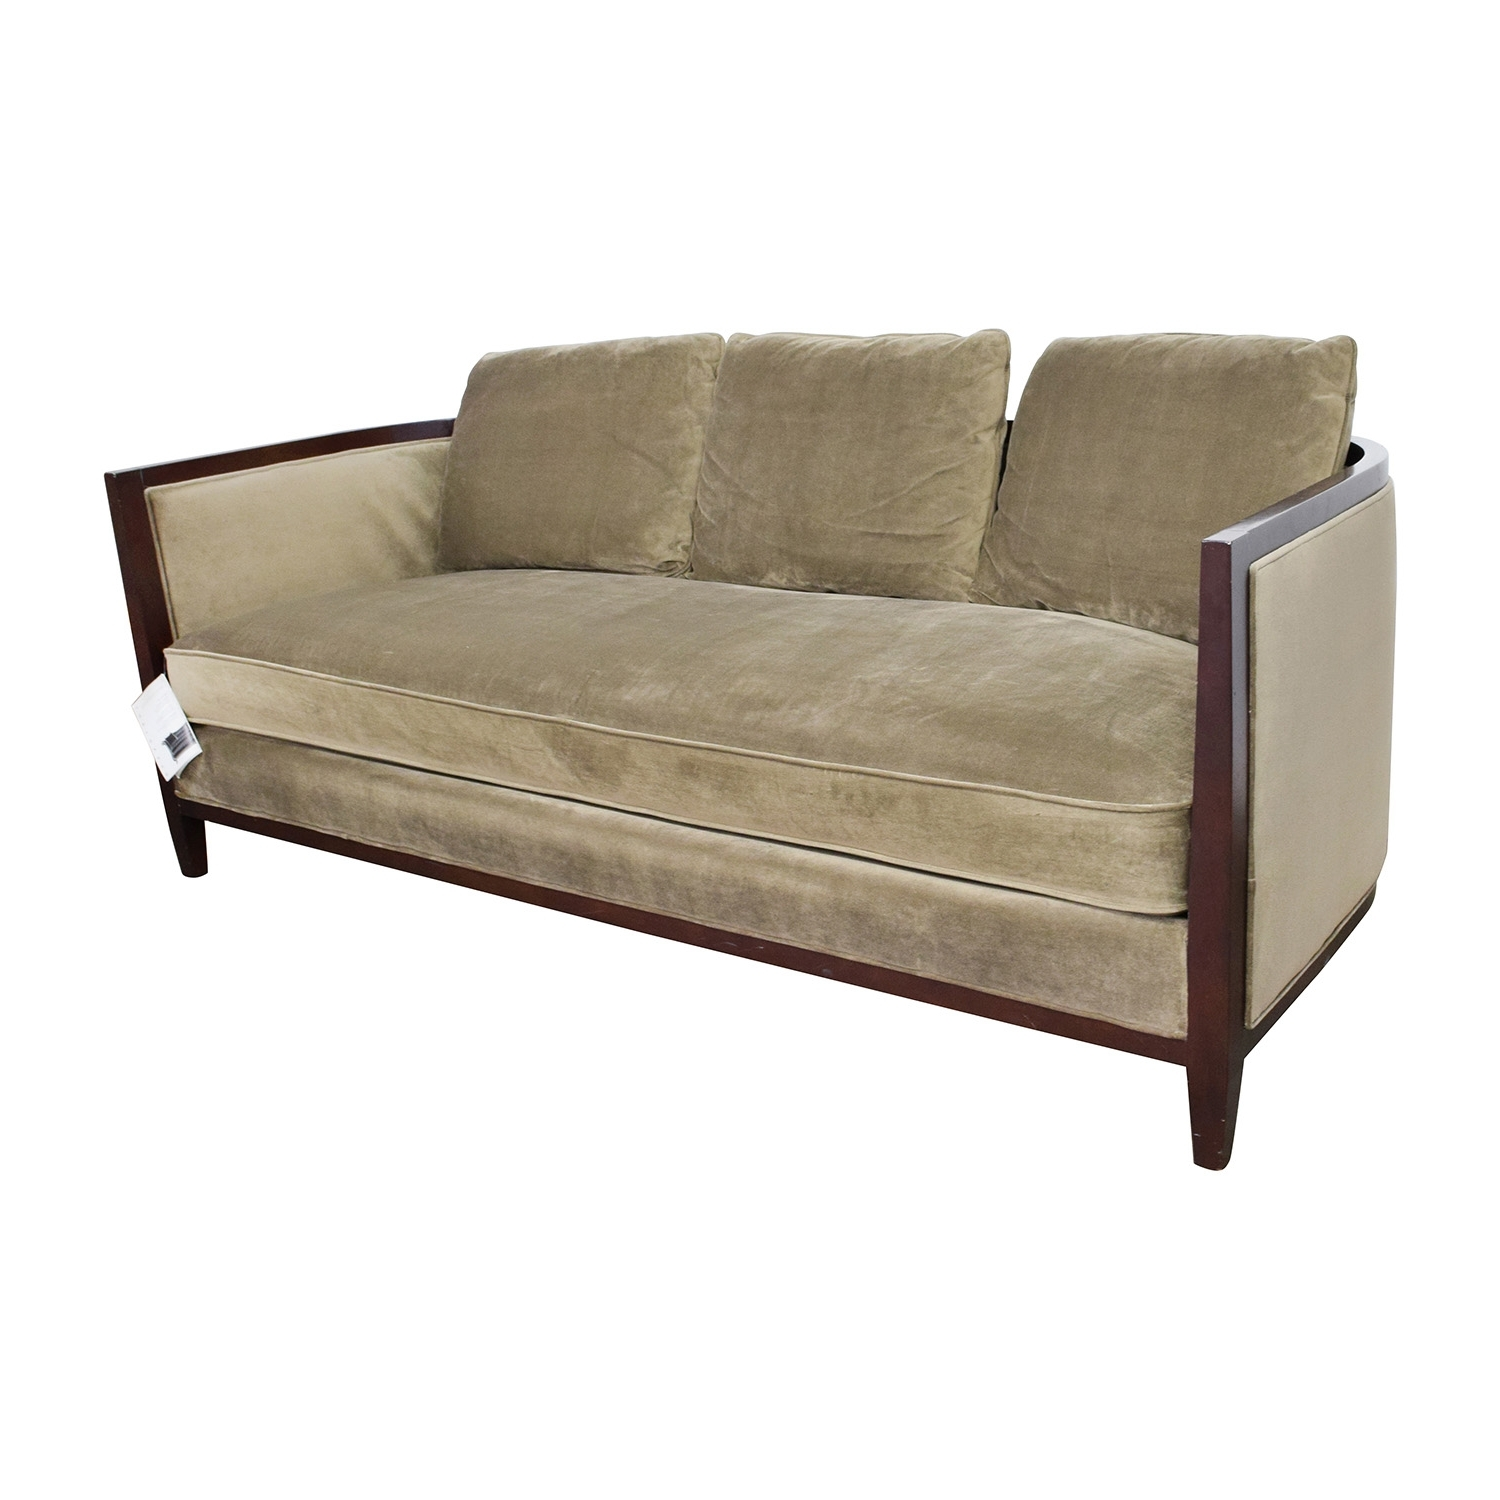 [%85% Off – Bernhardt Bernhardt Tan Single Cushion Sofa / Sofas Throughout Favorite One Cushion Sofas|One Cushion Sofas Regarding Most Popular 85% Off – Bernhardt Bernhardt Tan Single Cushion Sofa / Sofas|Widely Used One Cushion Sofas With 85% Off – Bernhardt Bernhardt Tan Single Cushion Sofa / Sofas|Well Known 85% Off – Bernhardt Bernhardt Tan Single Cushion Sofa / Sofas In One Cushion Sofas%] (View 15 of 20)